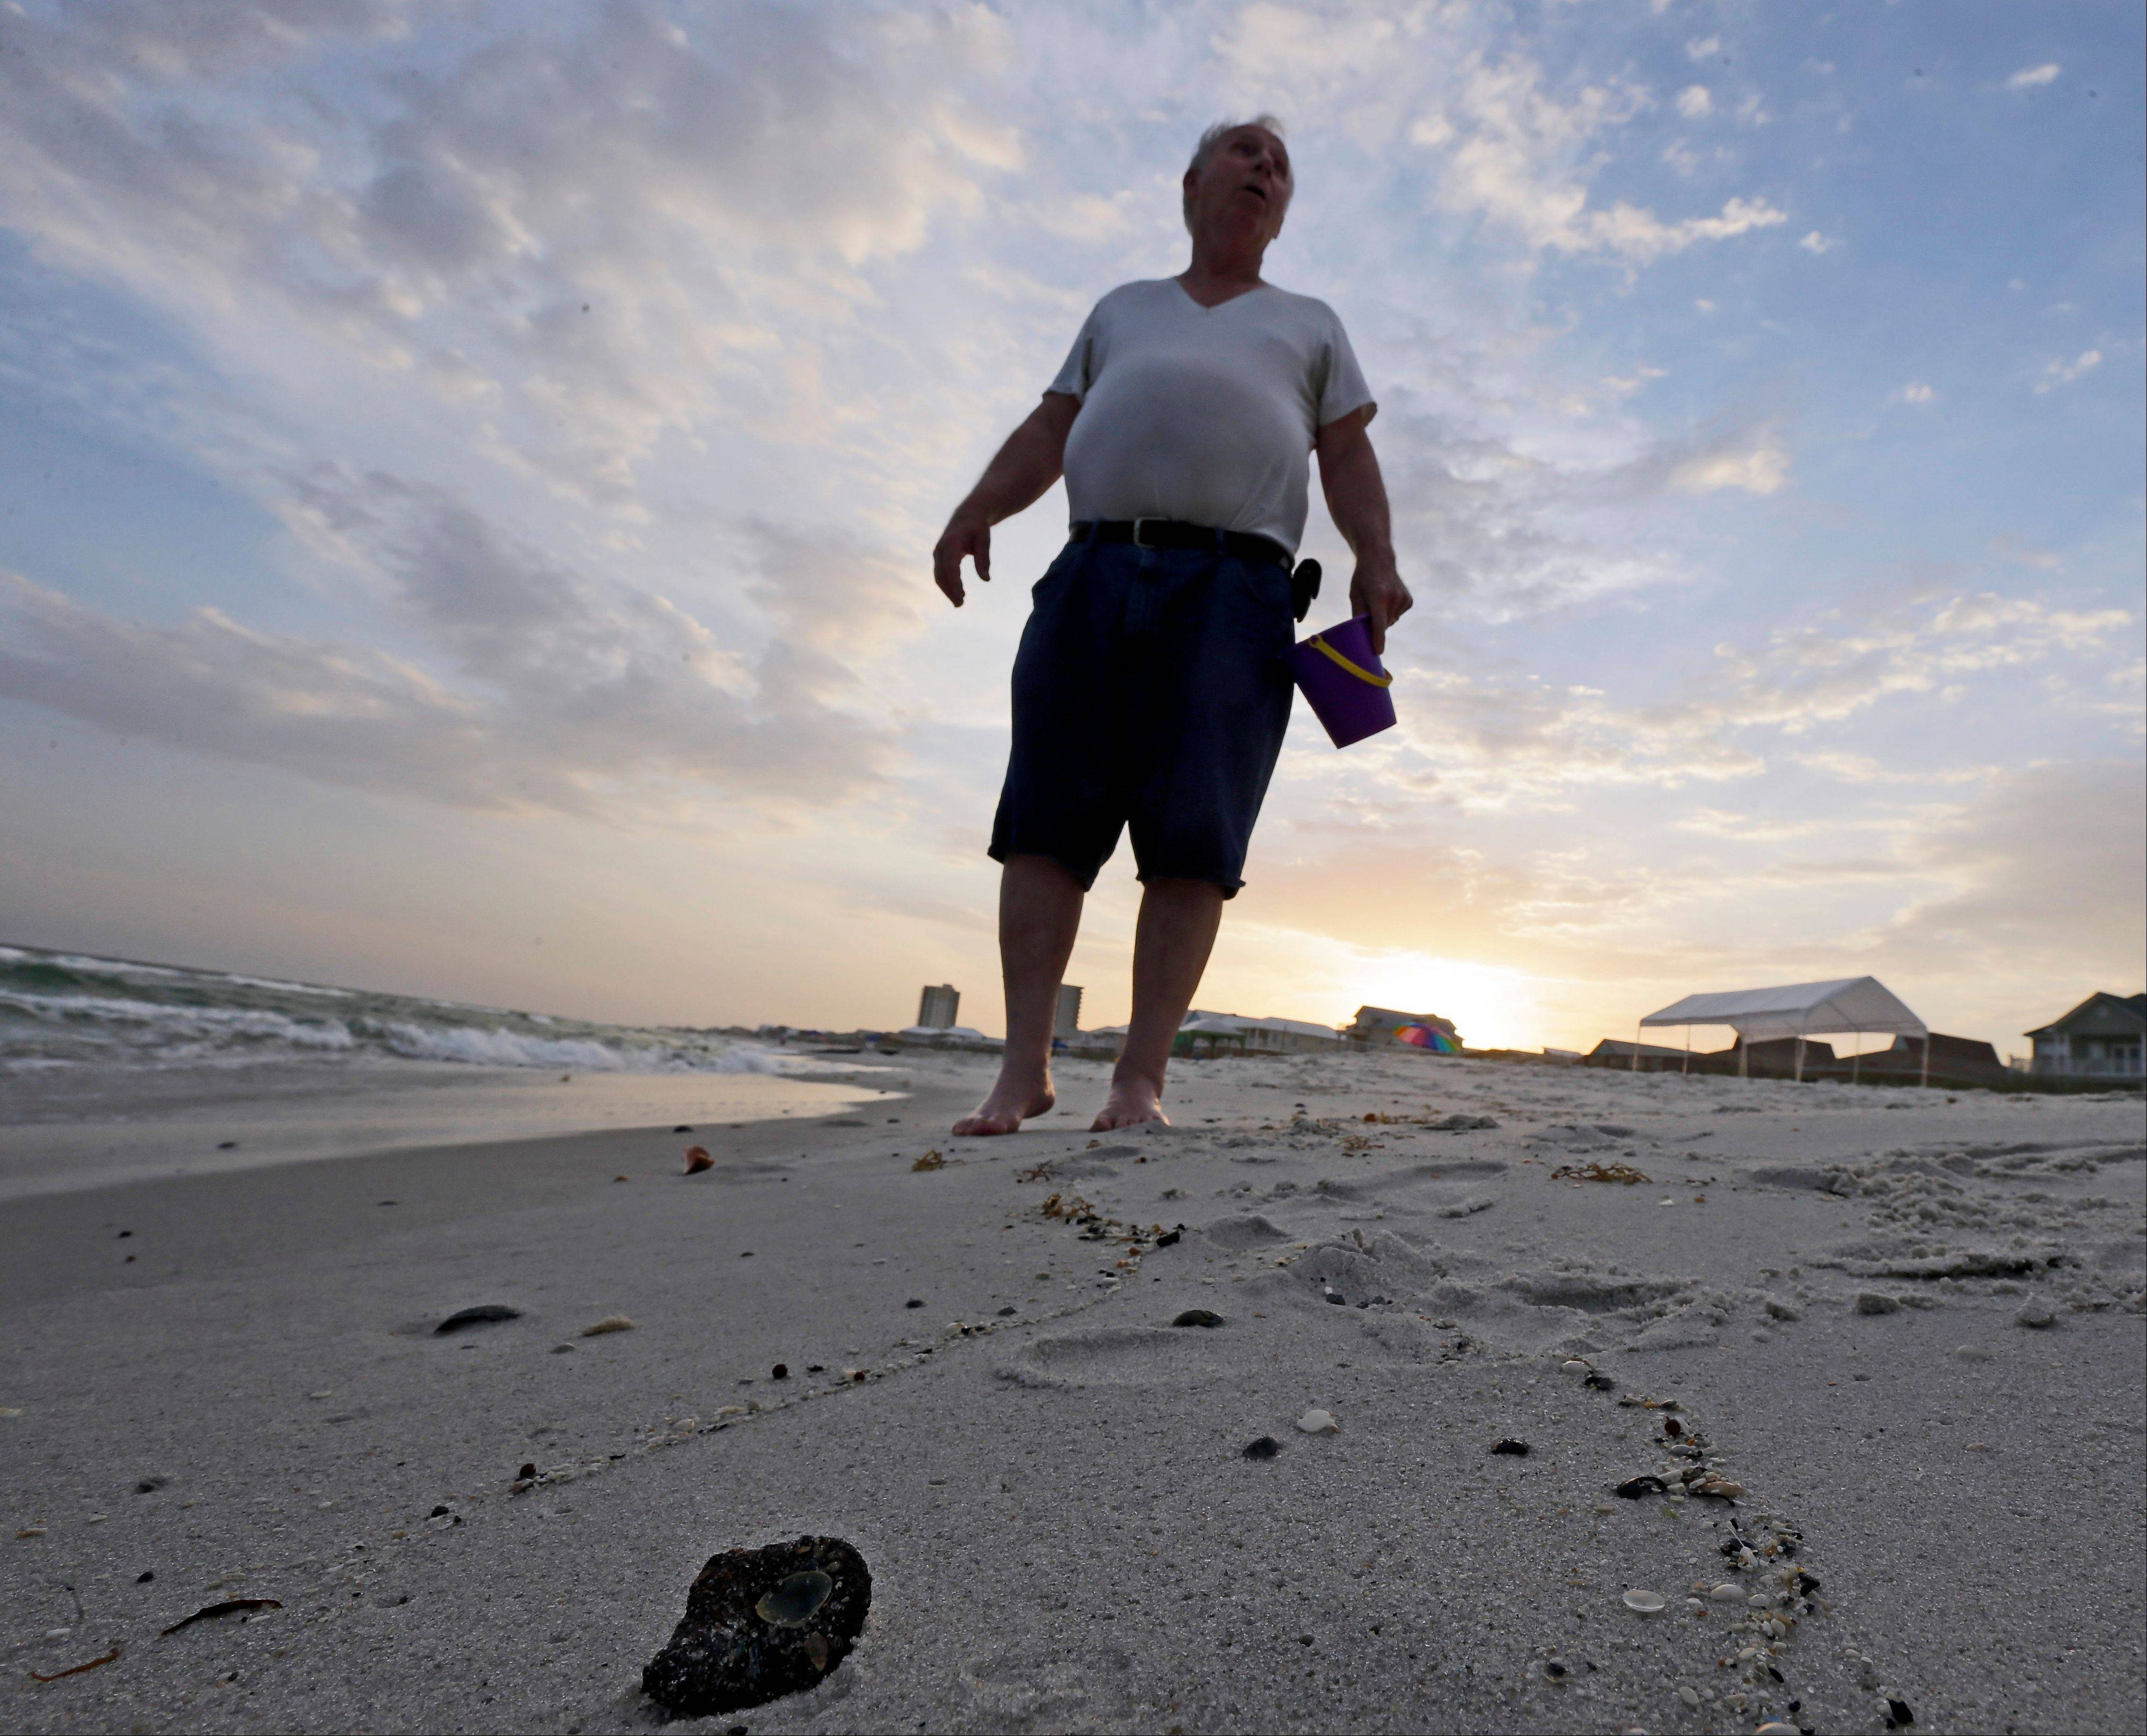 A small shell is embedded in a tar ball on the beach in Gulf Shores, Ala. After three years and $14 billion worth of work following the BP oil spill in the Gulf of Mexico, the petroleum giant and the Coast Guard say it�s time to end extraordinary cleanup operations in Alabama, Florida and Mississippi.